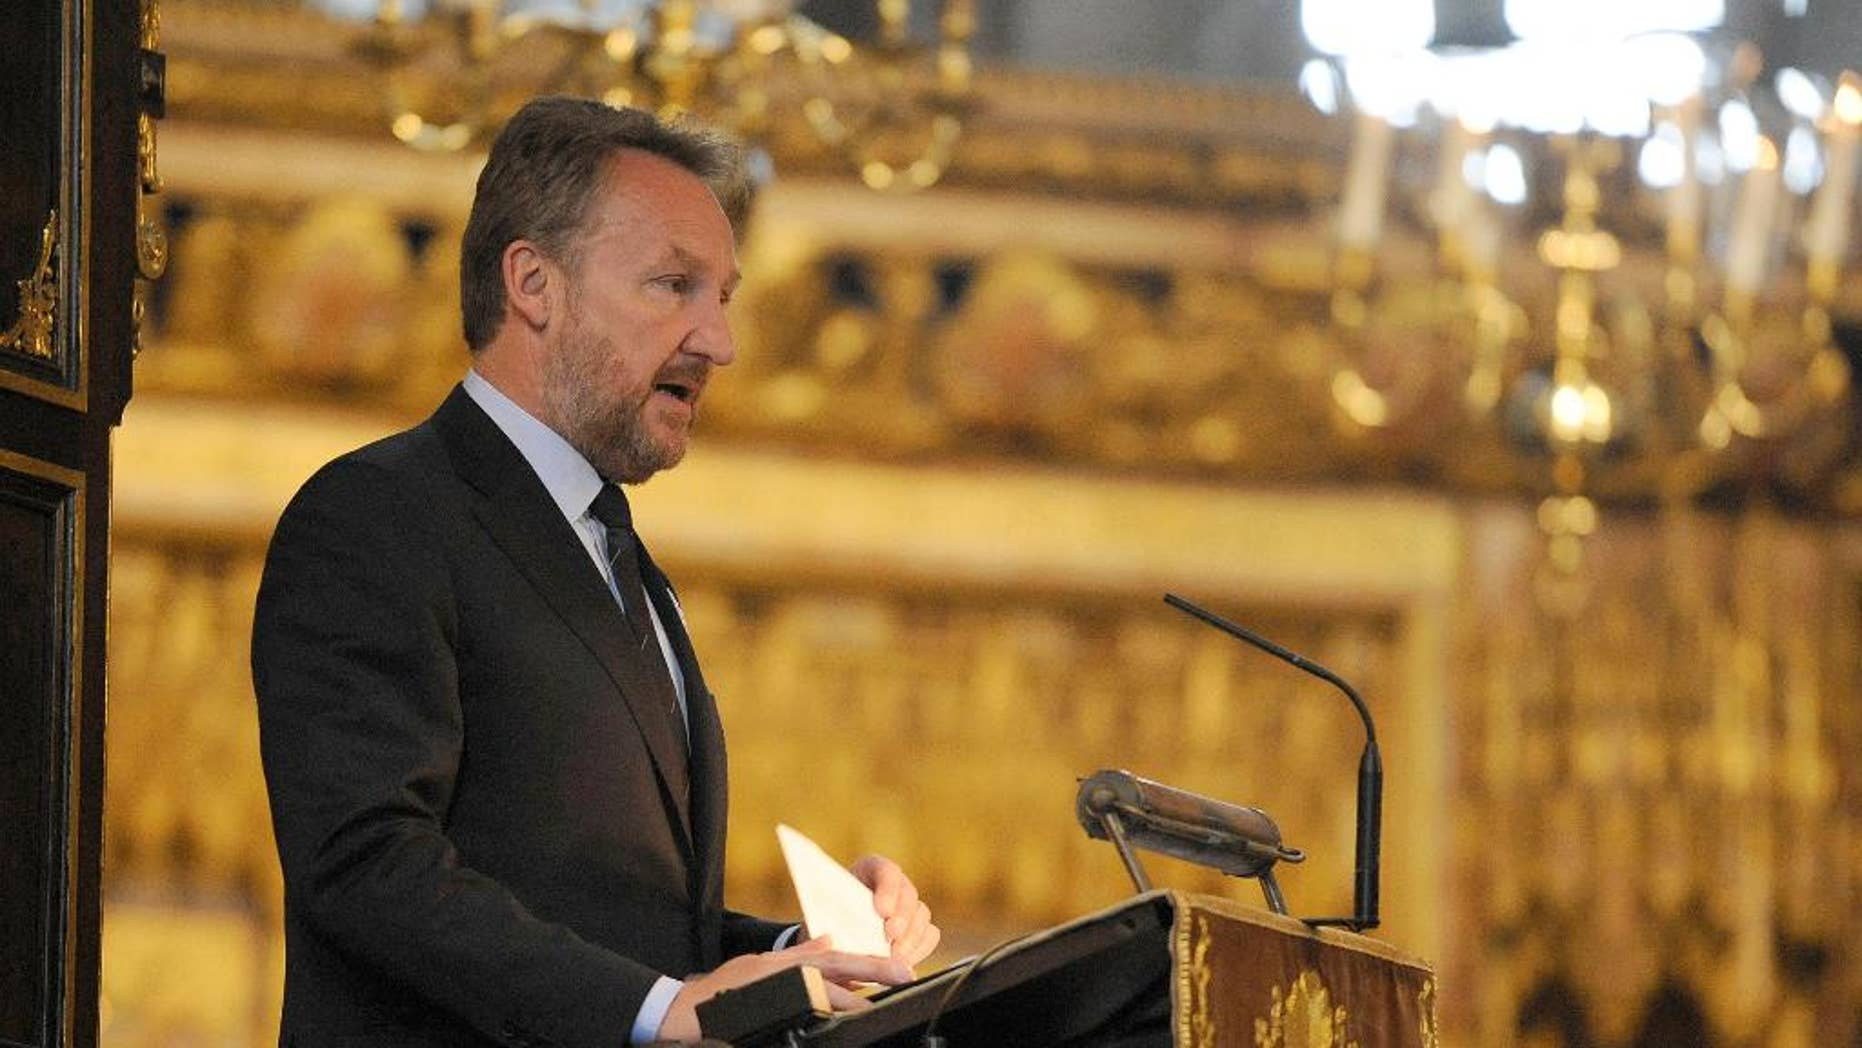 The Muslim Bosniak member of Bosnia's tripartite presidency Bakir Izetbegovic speaks during a  memorial service at Westminster Abbey, London, to mark the  upcoming 20th anniversary of the Srebrenica massacre Monday July 6, 2015.  Days before  anniversary of the Srebrenica massacre, hundreds of Bosnians and Britons attended the memorial service at Westminster Abbey on Monday to remember the more than 8,000 male Muslim victims. (Lauren Hurley/PA via AP) UNITED KINGDOM OUT